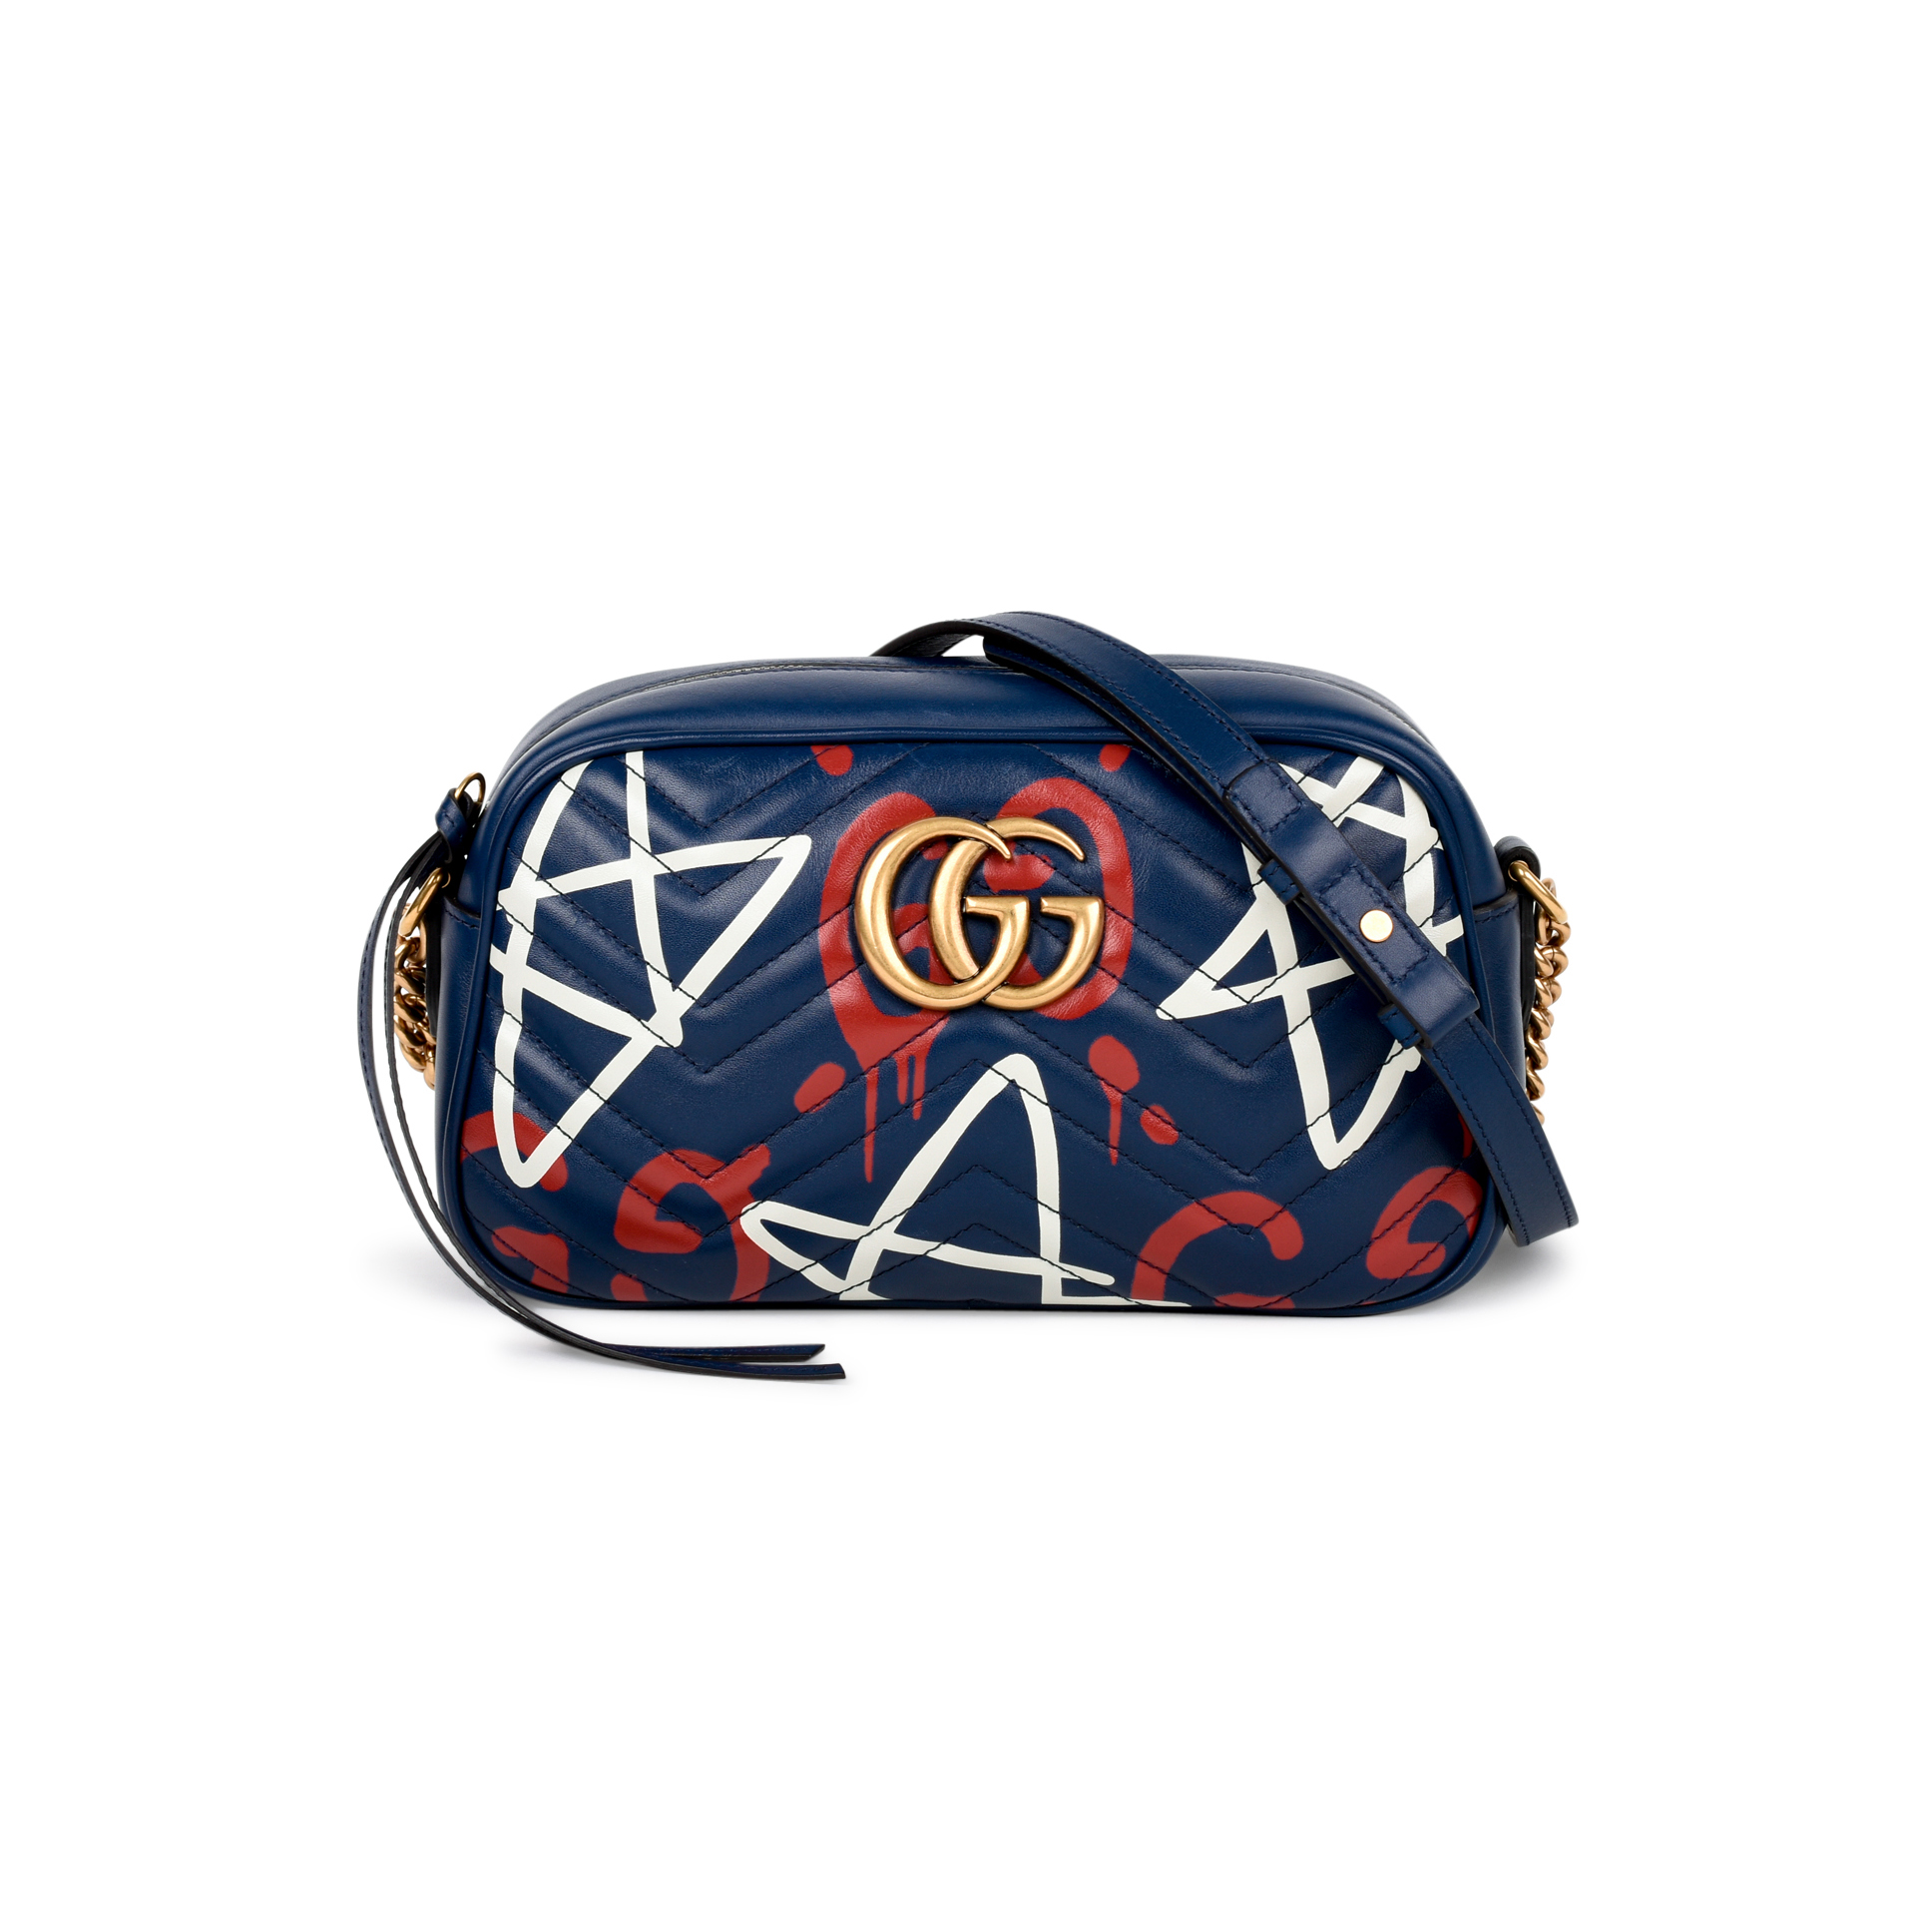 53580b4a4a90 Authentic Second Hand Gucci GucciGhost GG Marmont Graffiti (PSS-143-00113)  | THE FIFTH COLLECTION